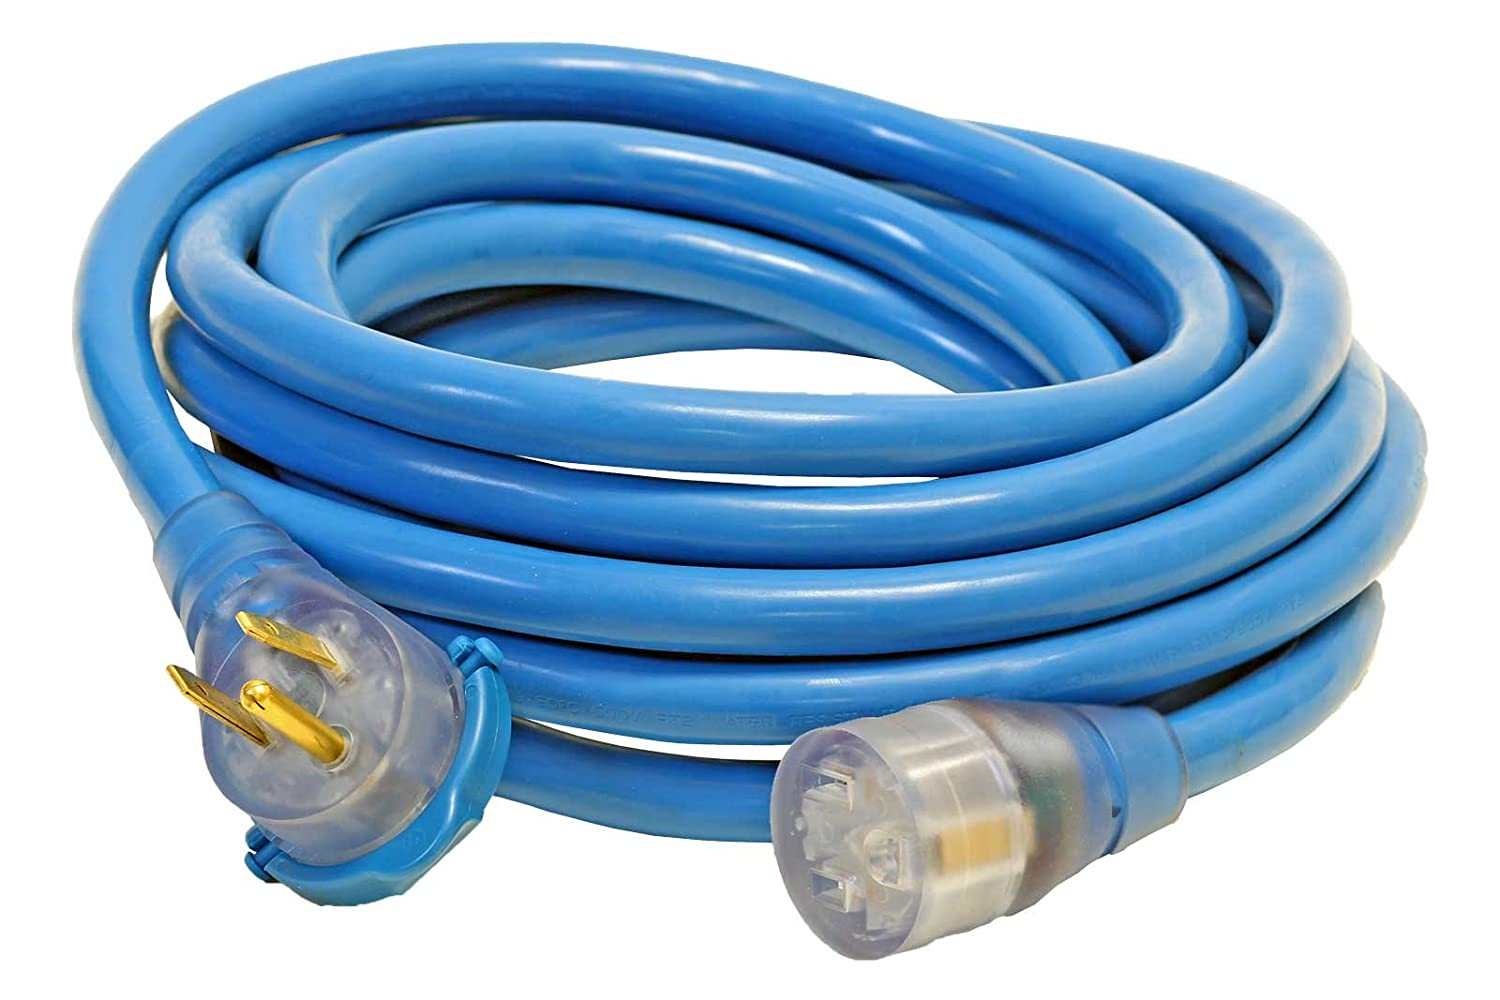 25-Foot 8/3 STW 6-50 Welder Extension Cord, Blue, Your Name Printed ...